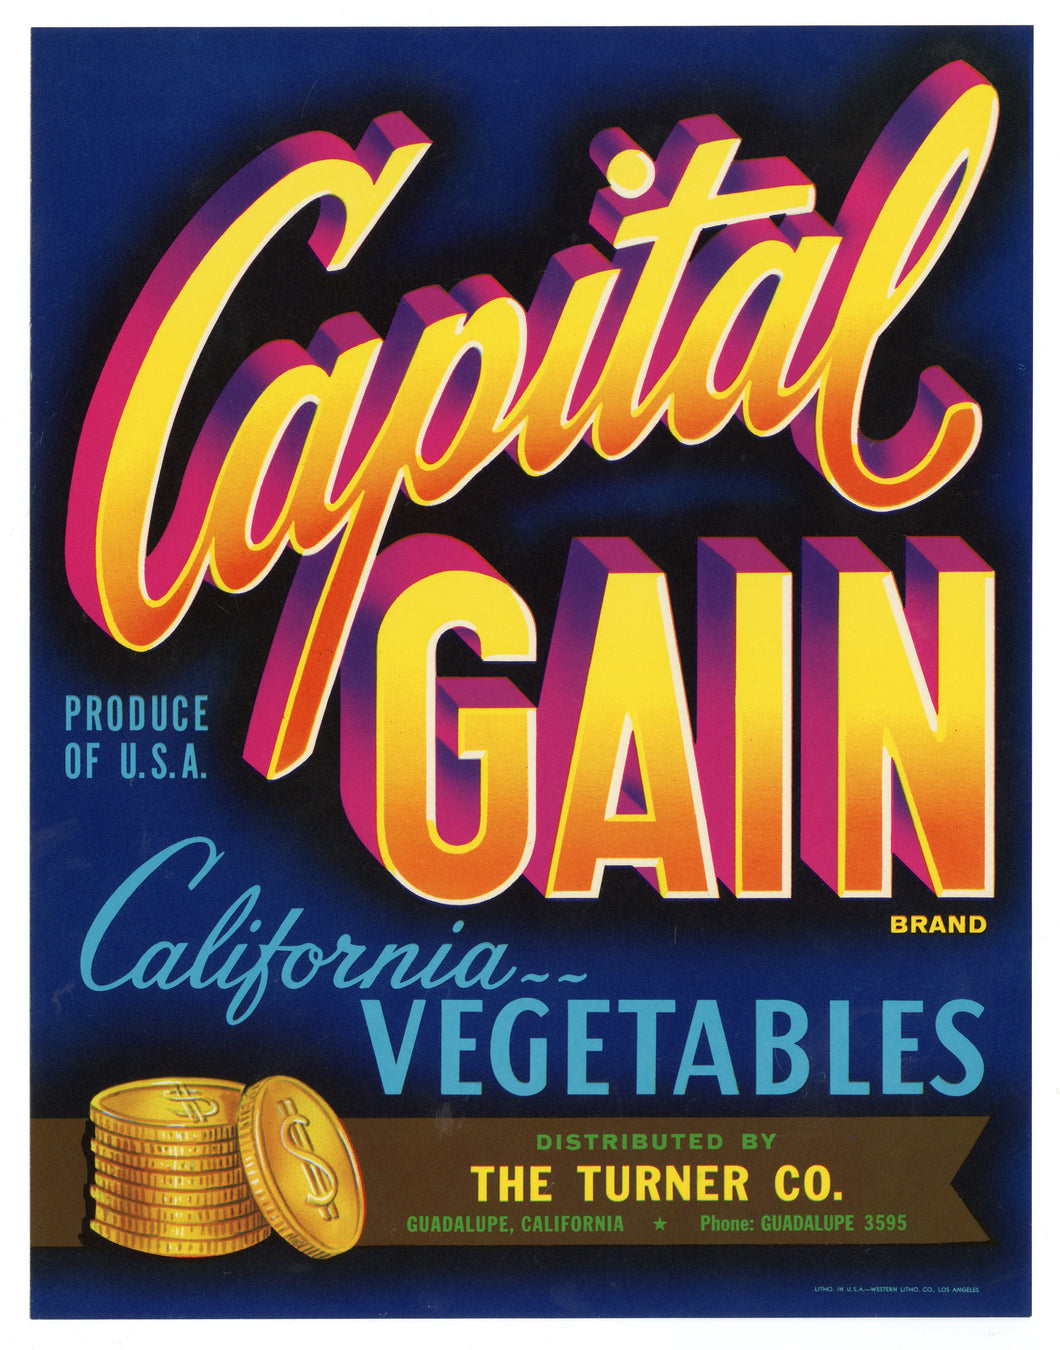 Vintage, Unused CAPITAL GAIN Vegetable Crate Label || Guadalupe, Ca.